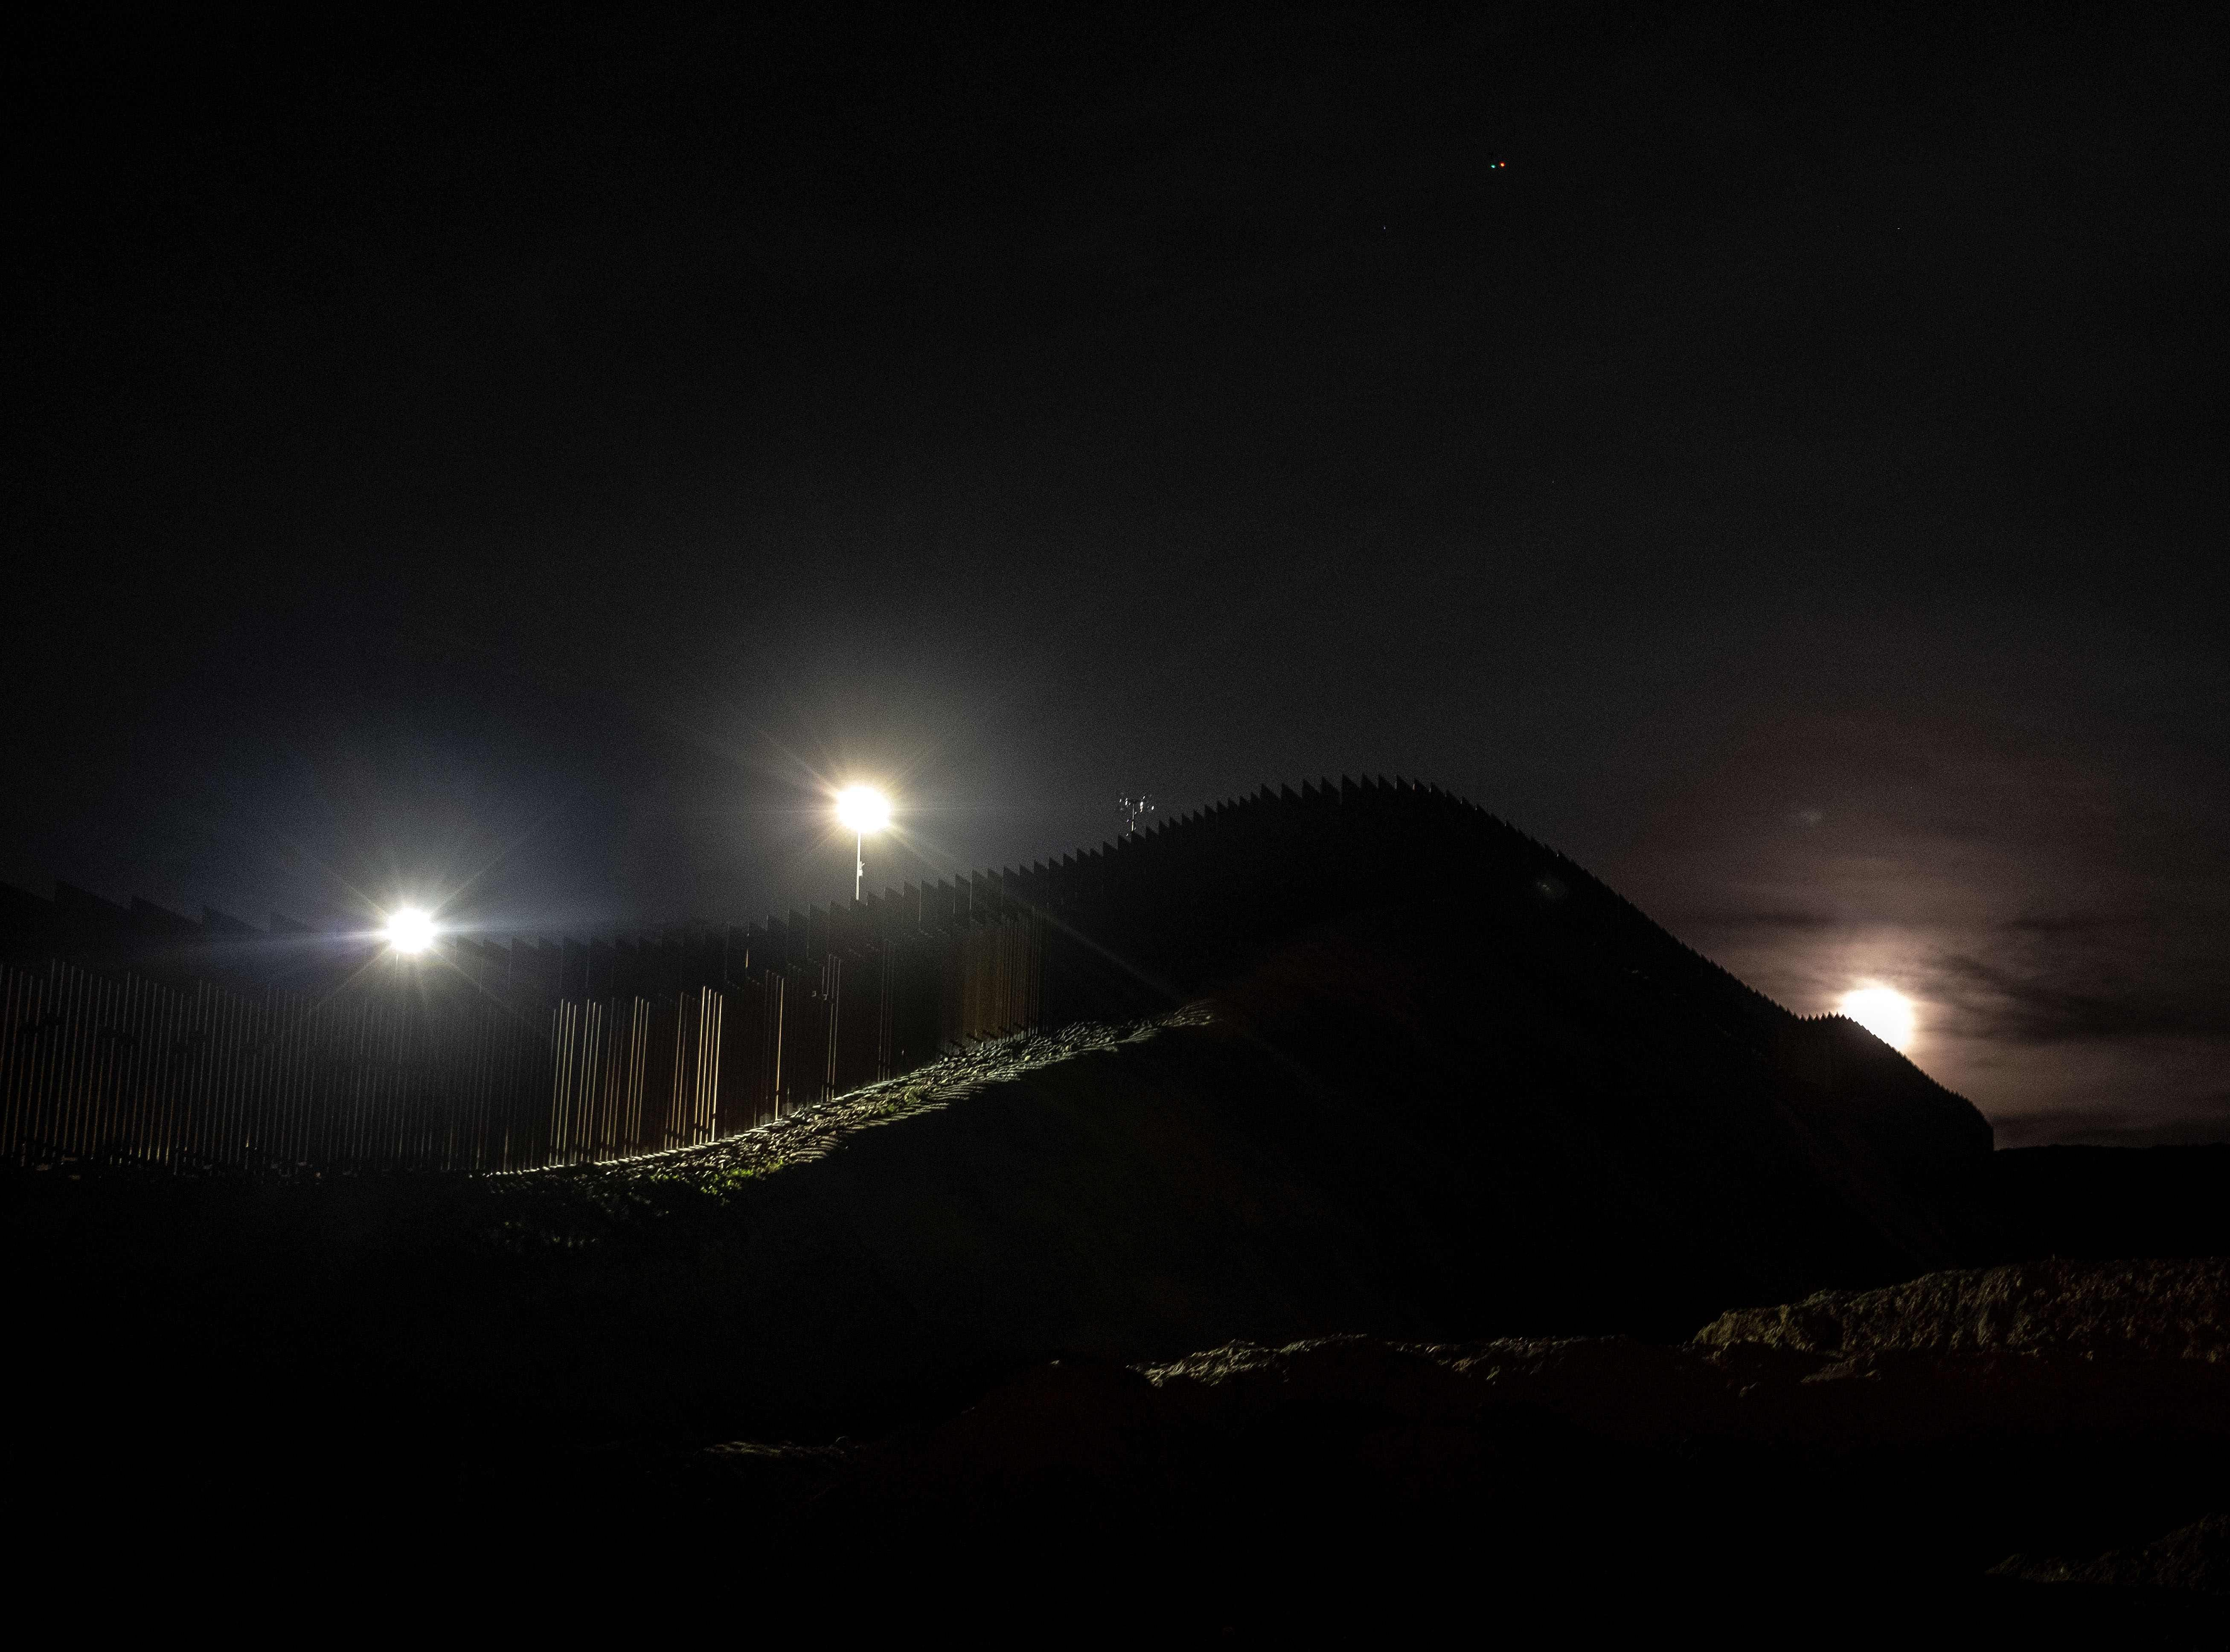 The US-Mexico border fence is silhouetted by the moon light in Tijuana, in Baja California state, Mexico, on January 20, 2019. (Photo by Guillermo Arias / AFP)GUILLERMO ARIAS/AFP/Getty Images